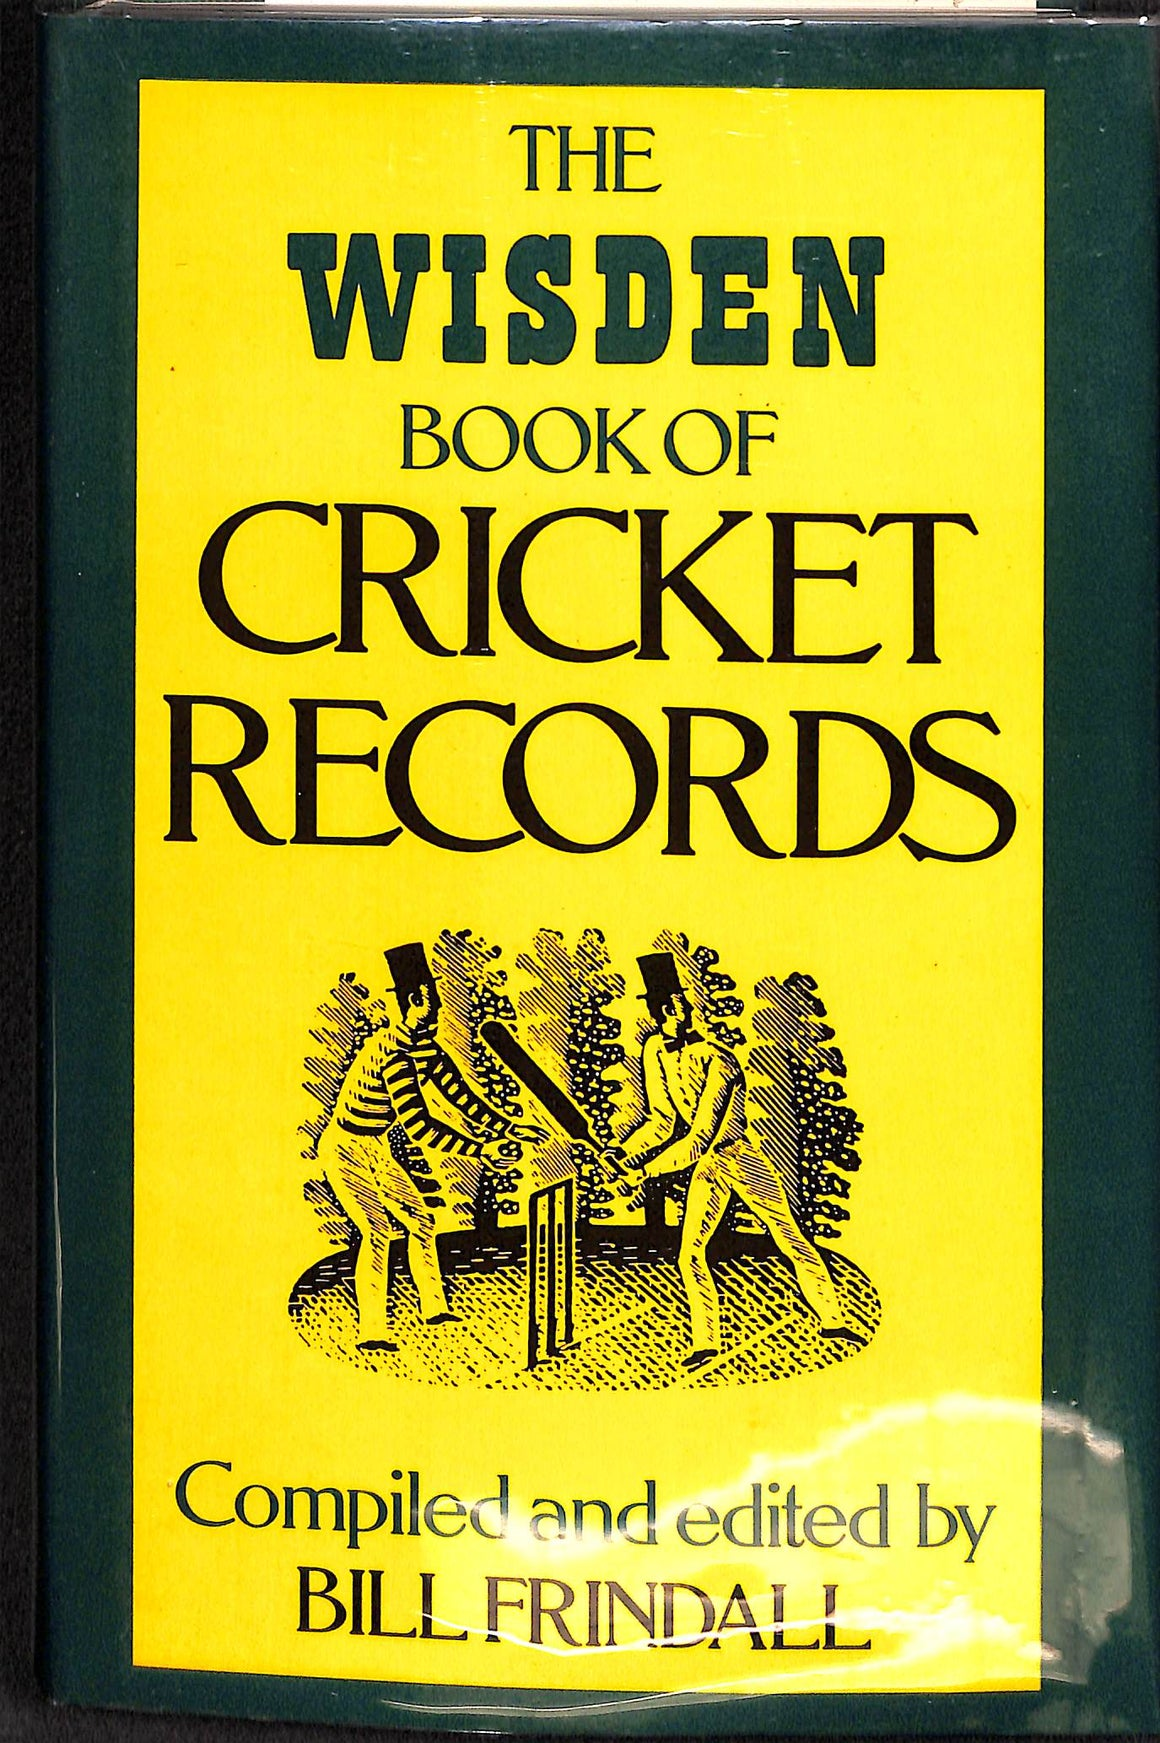 The Wisden Book of Cricket Records